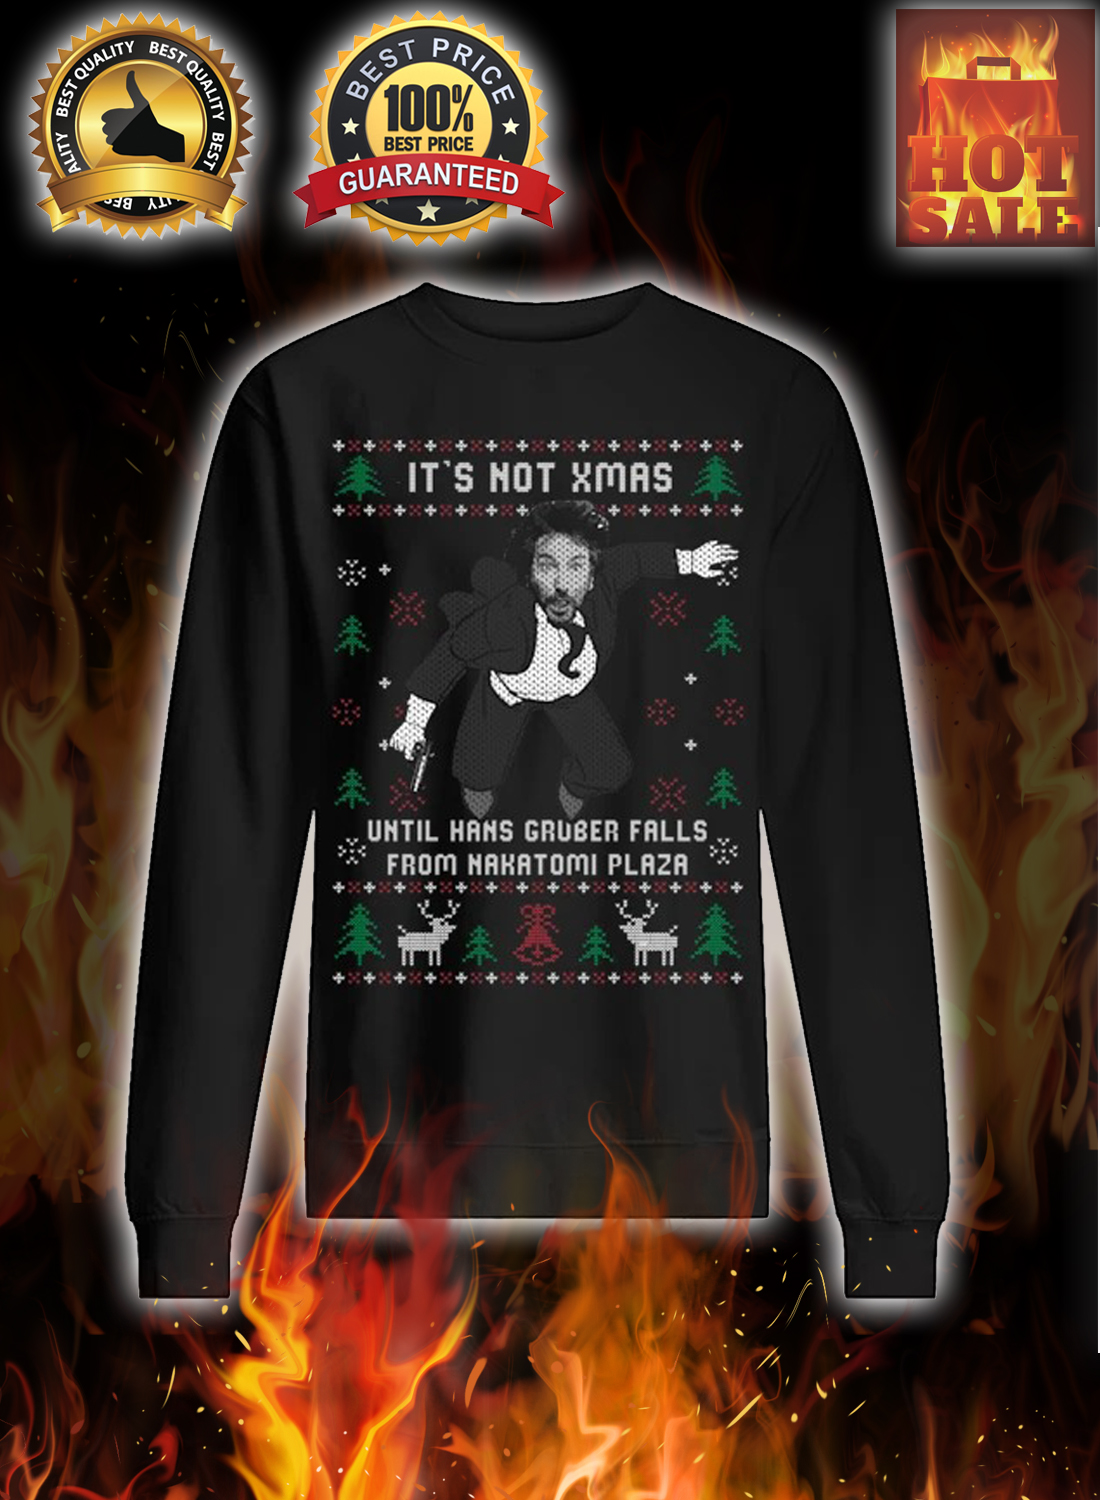 It's not xmas until hans gruber falls from nakatomi plaza ugly christmas sweater 1